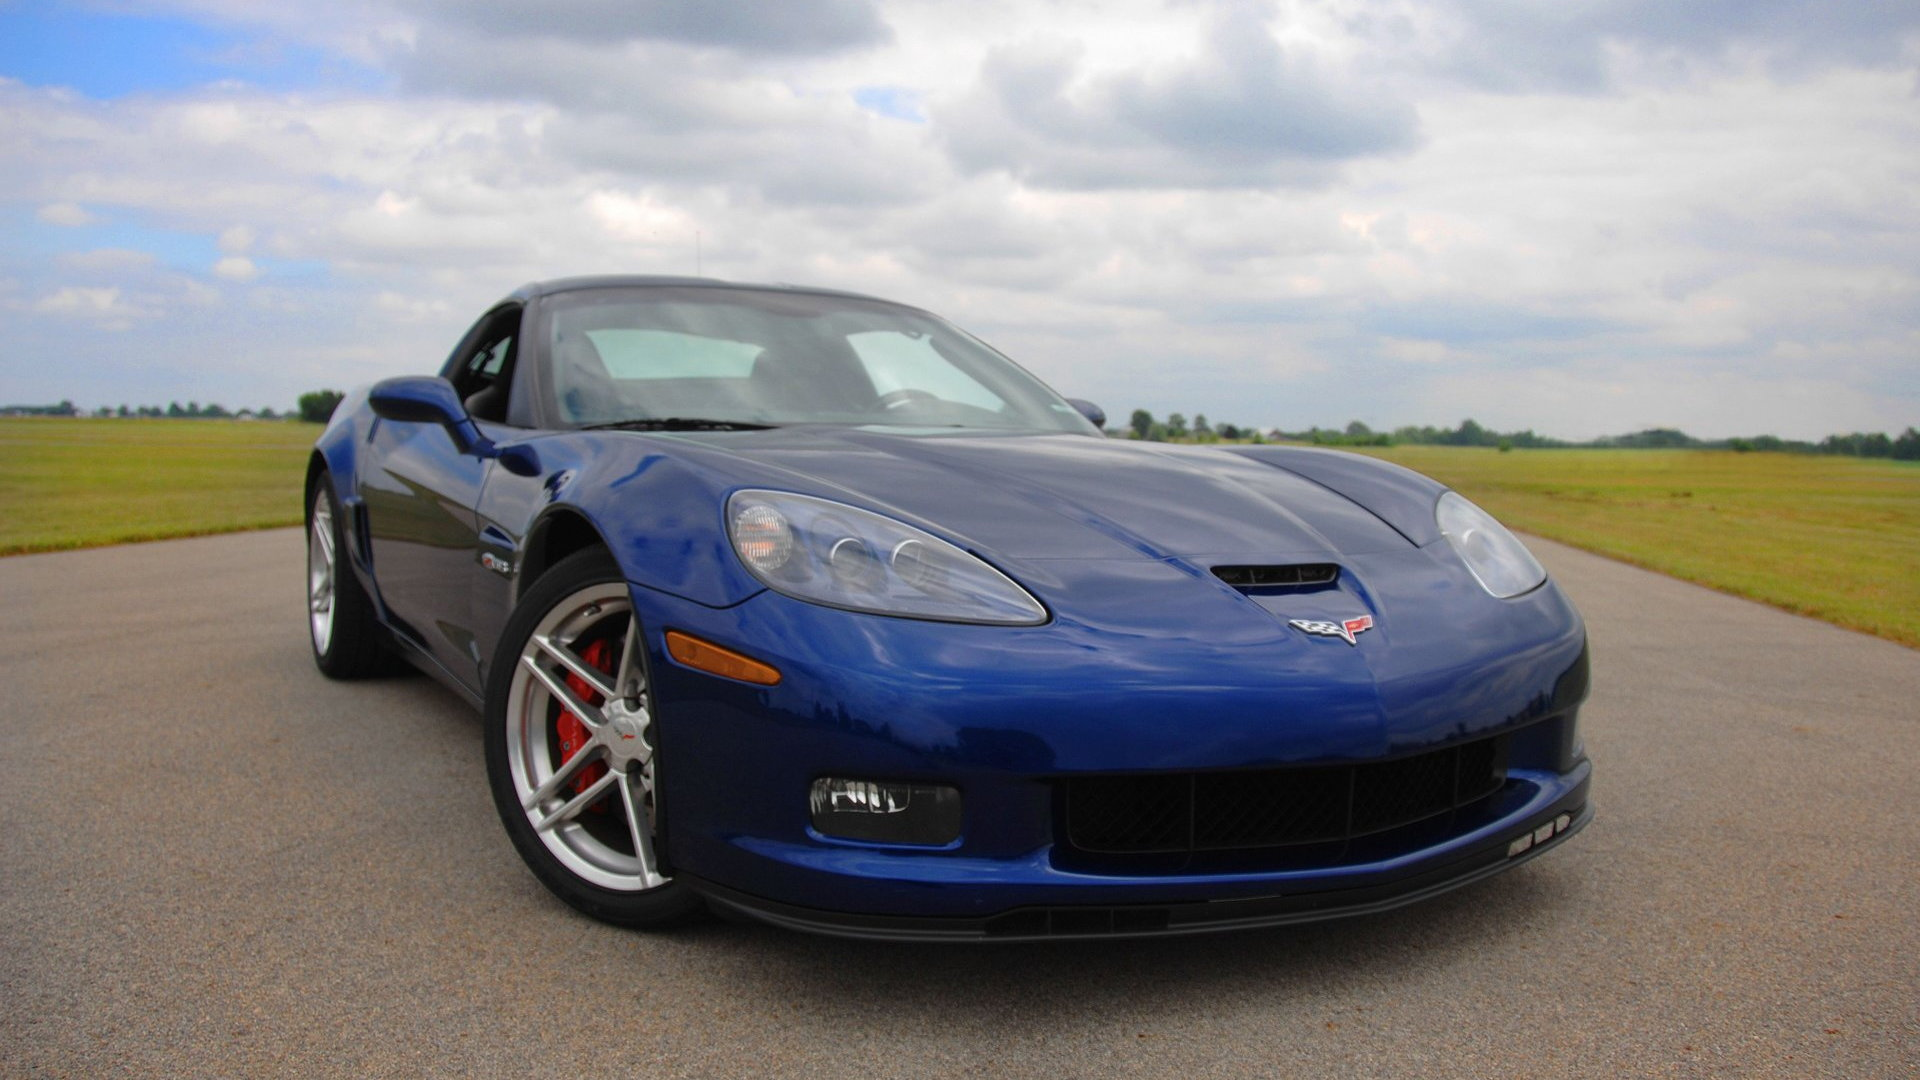 2005 Chevrolet Corvette Z06 Blue Devil